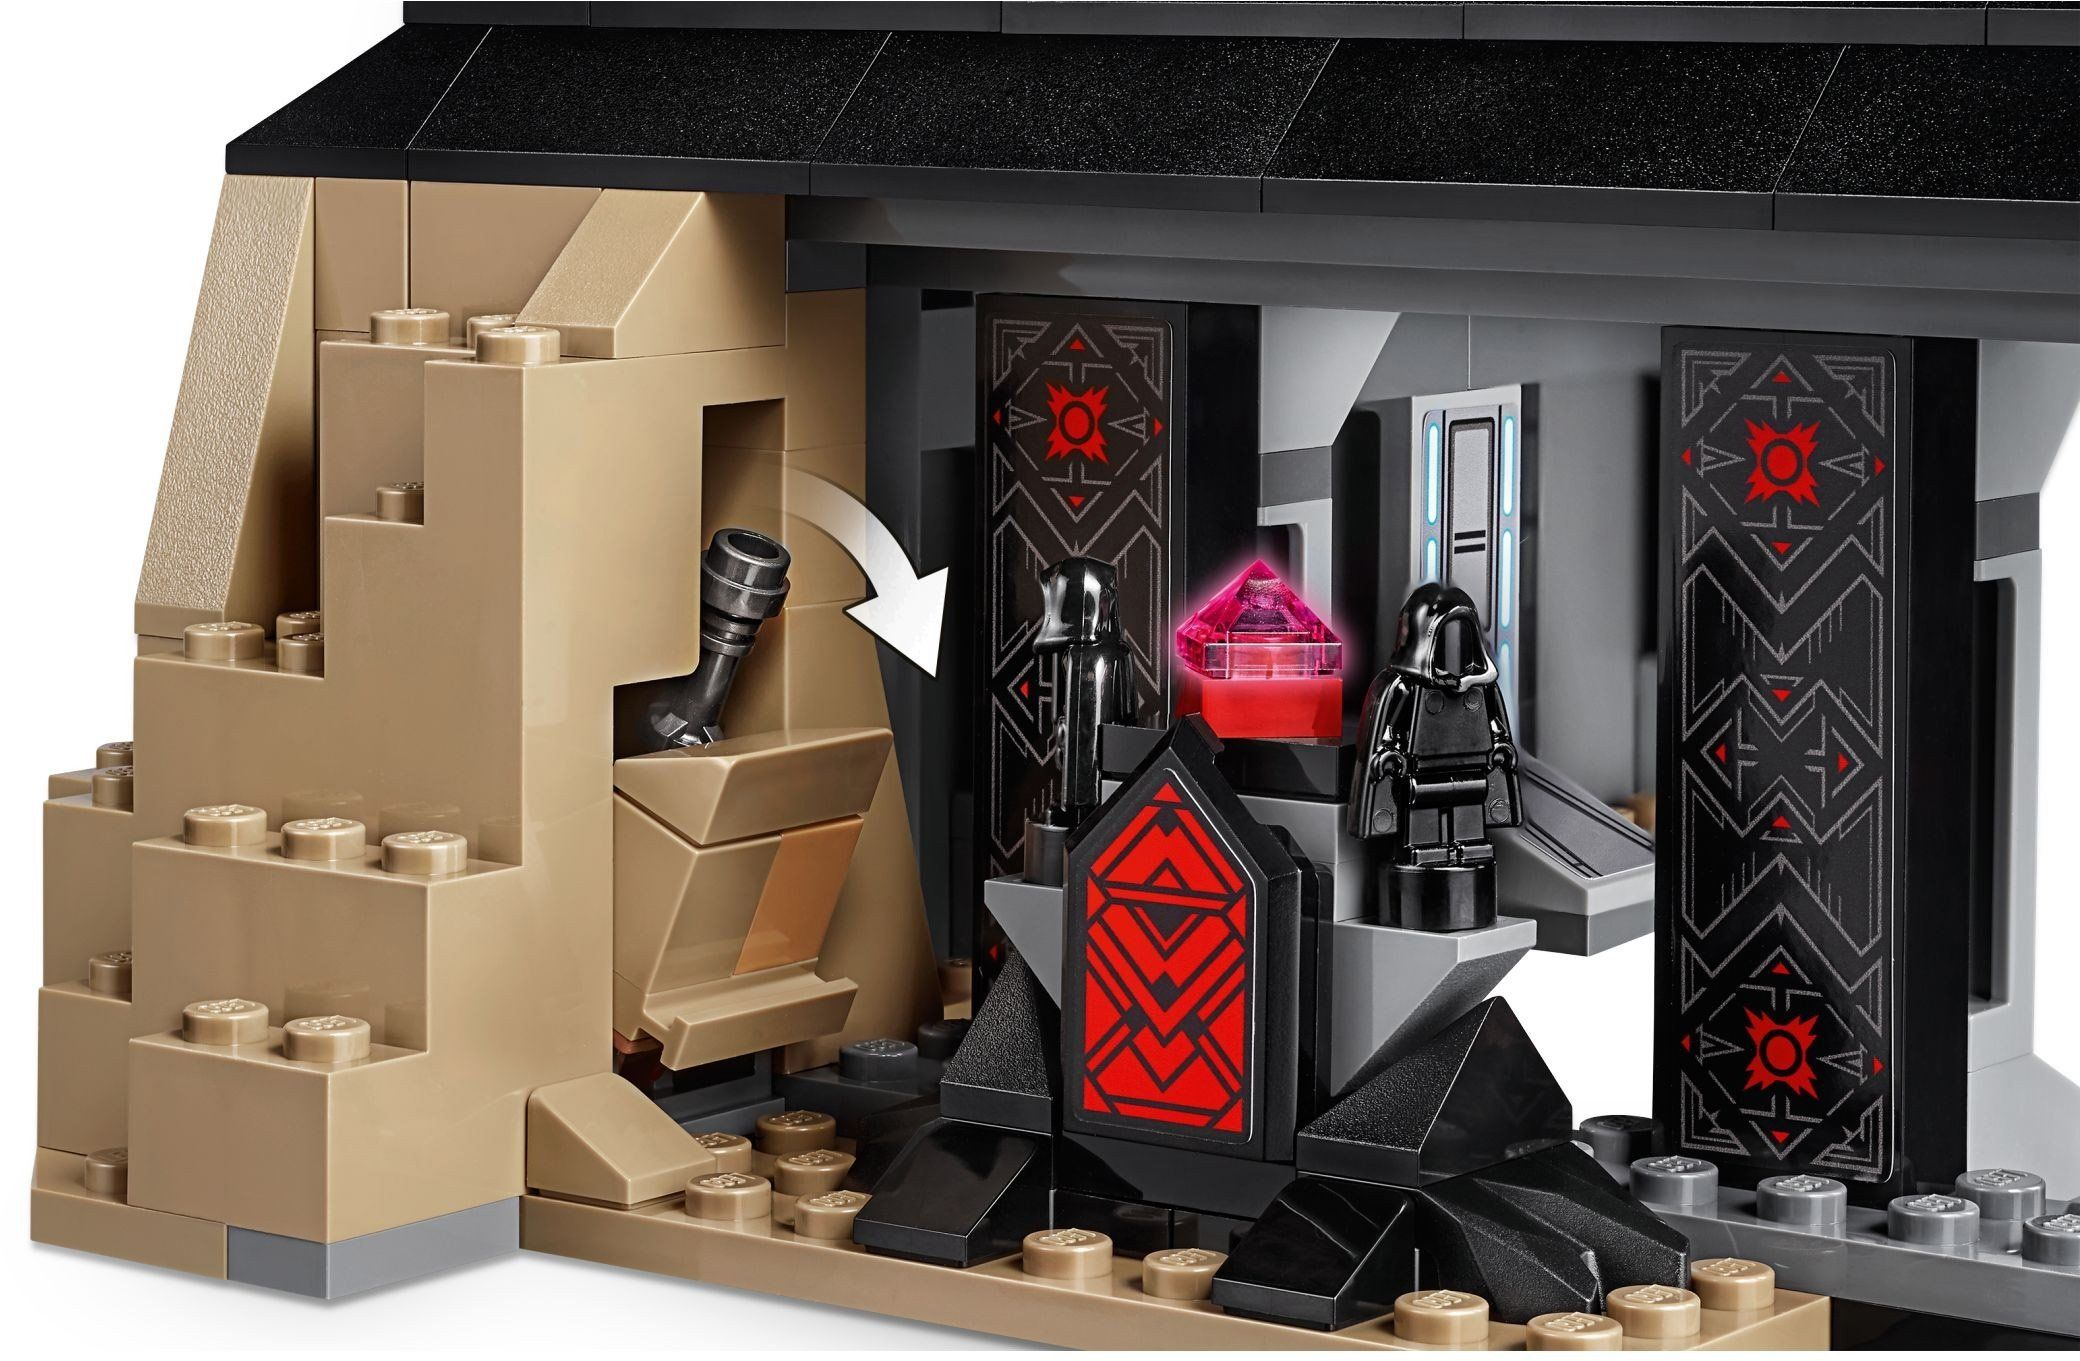 LEGO® Star Wars™ - 75251 Darth Vader's Castle